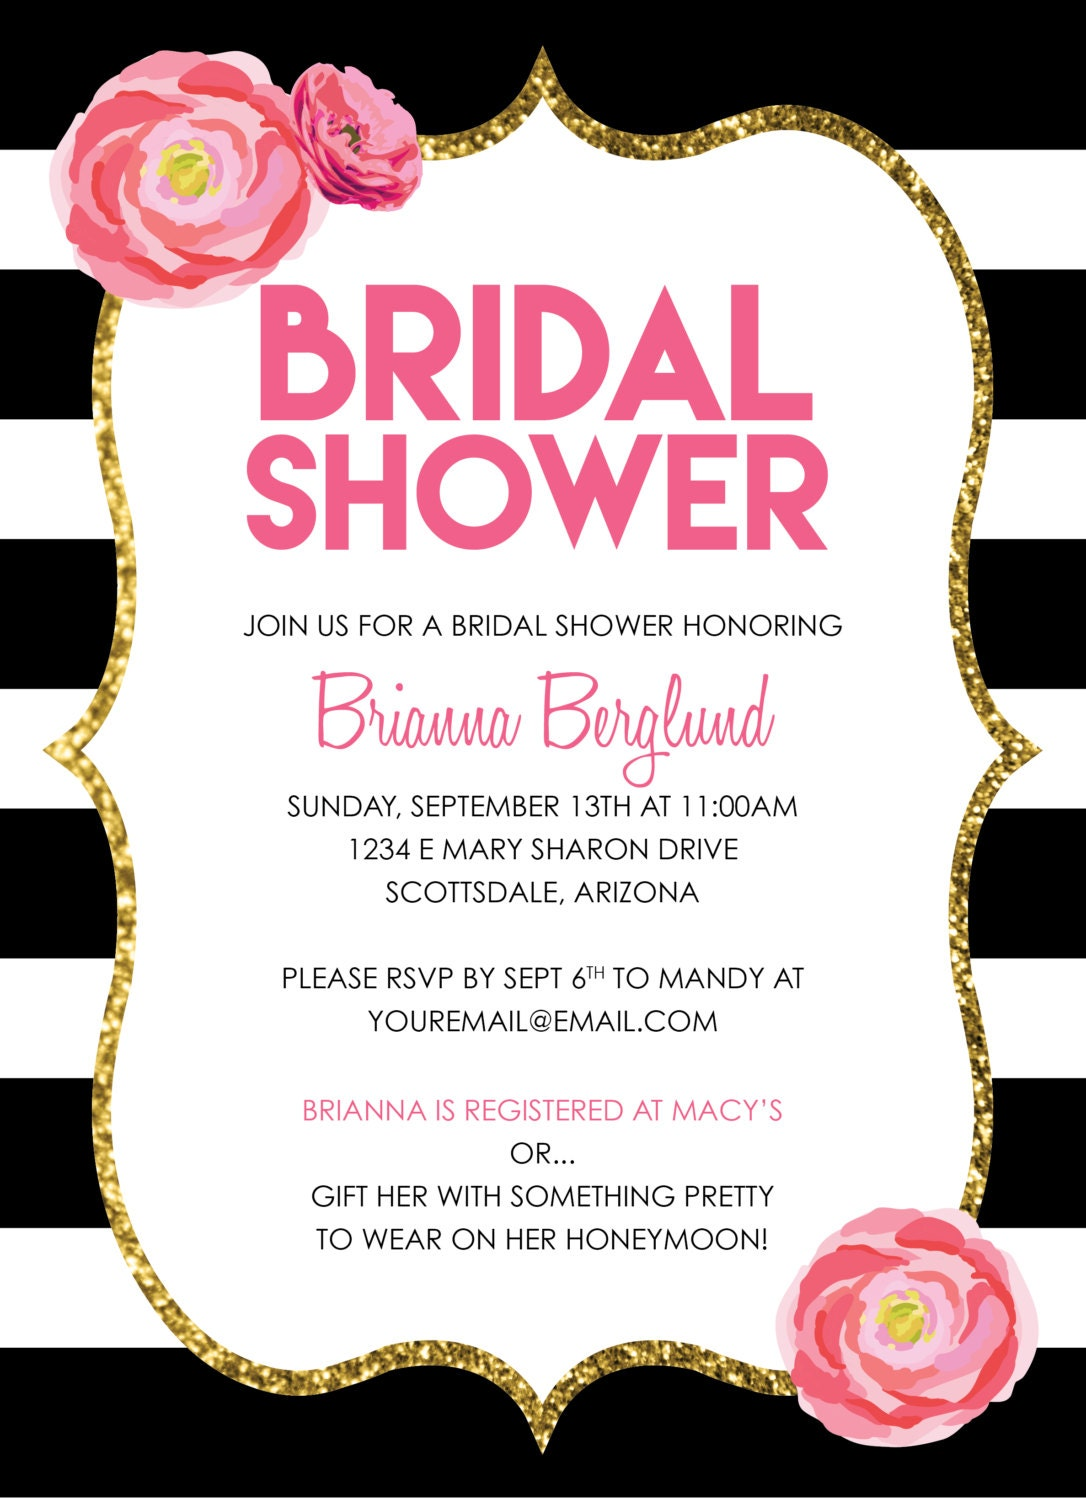 Bridal shower invitations black white and pink customized for Black and white bridal shower invitations